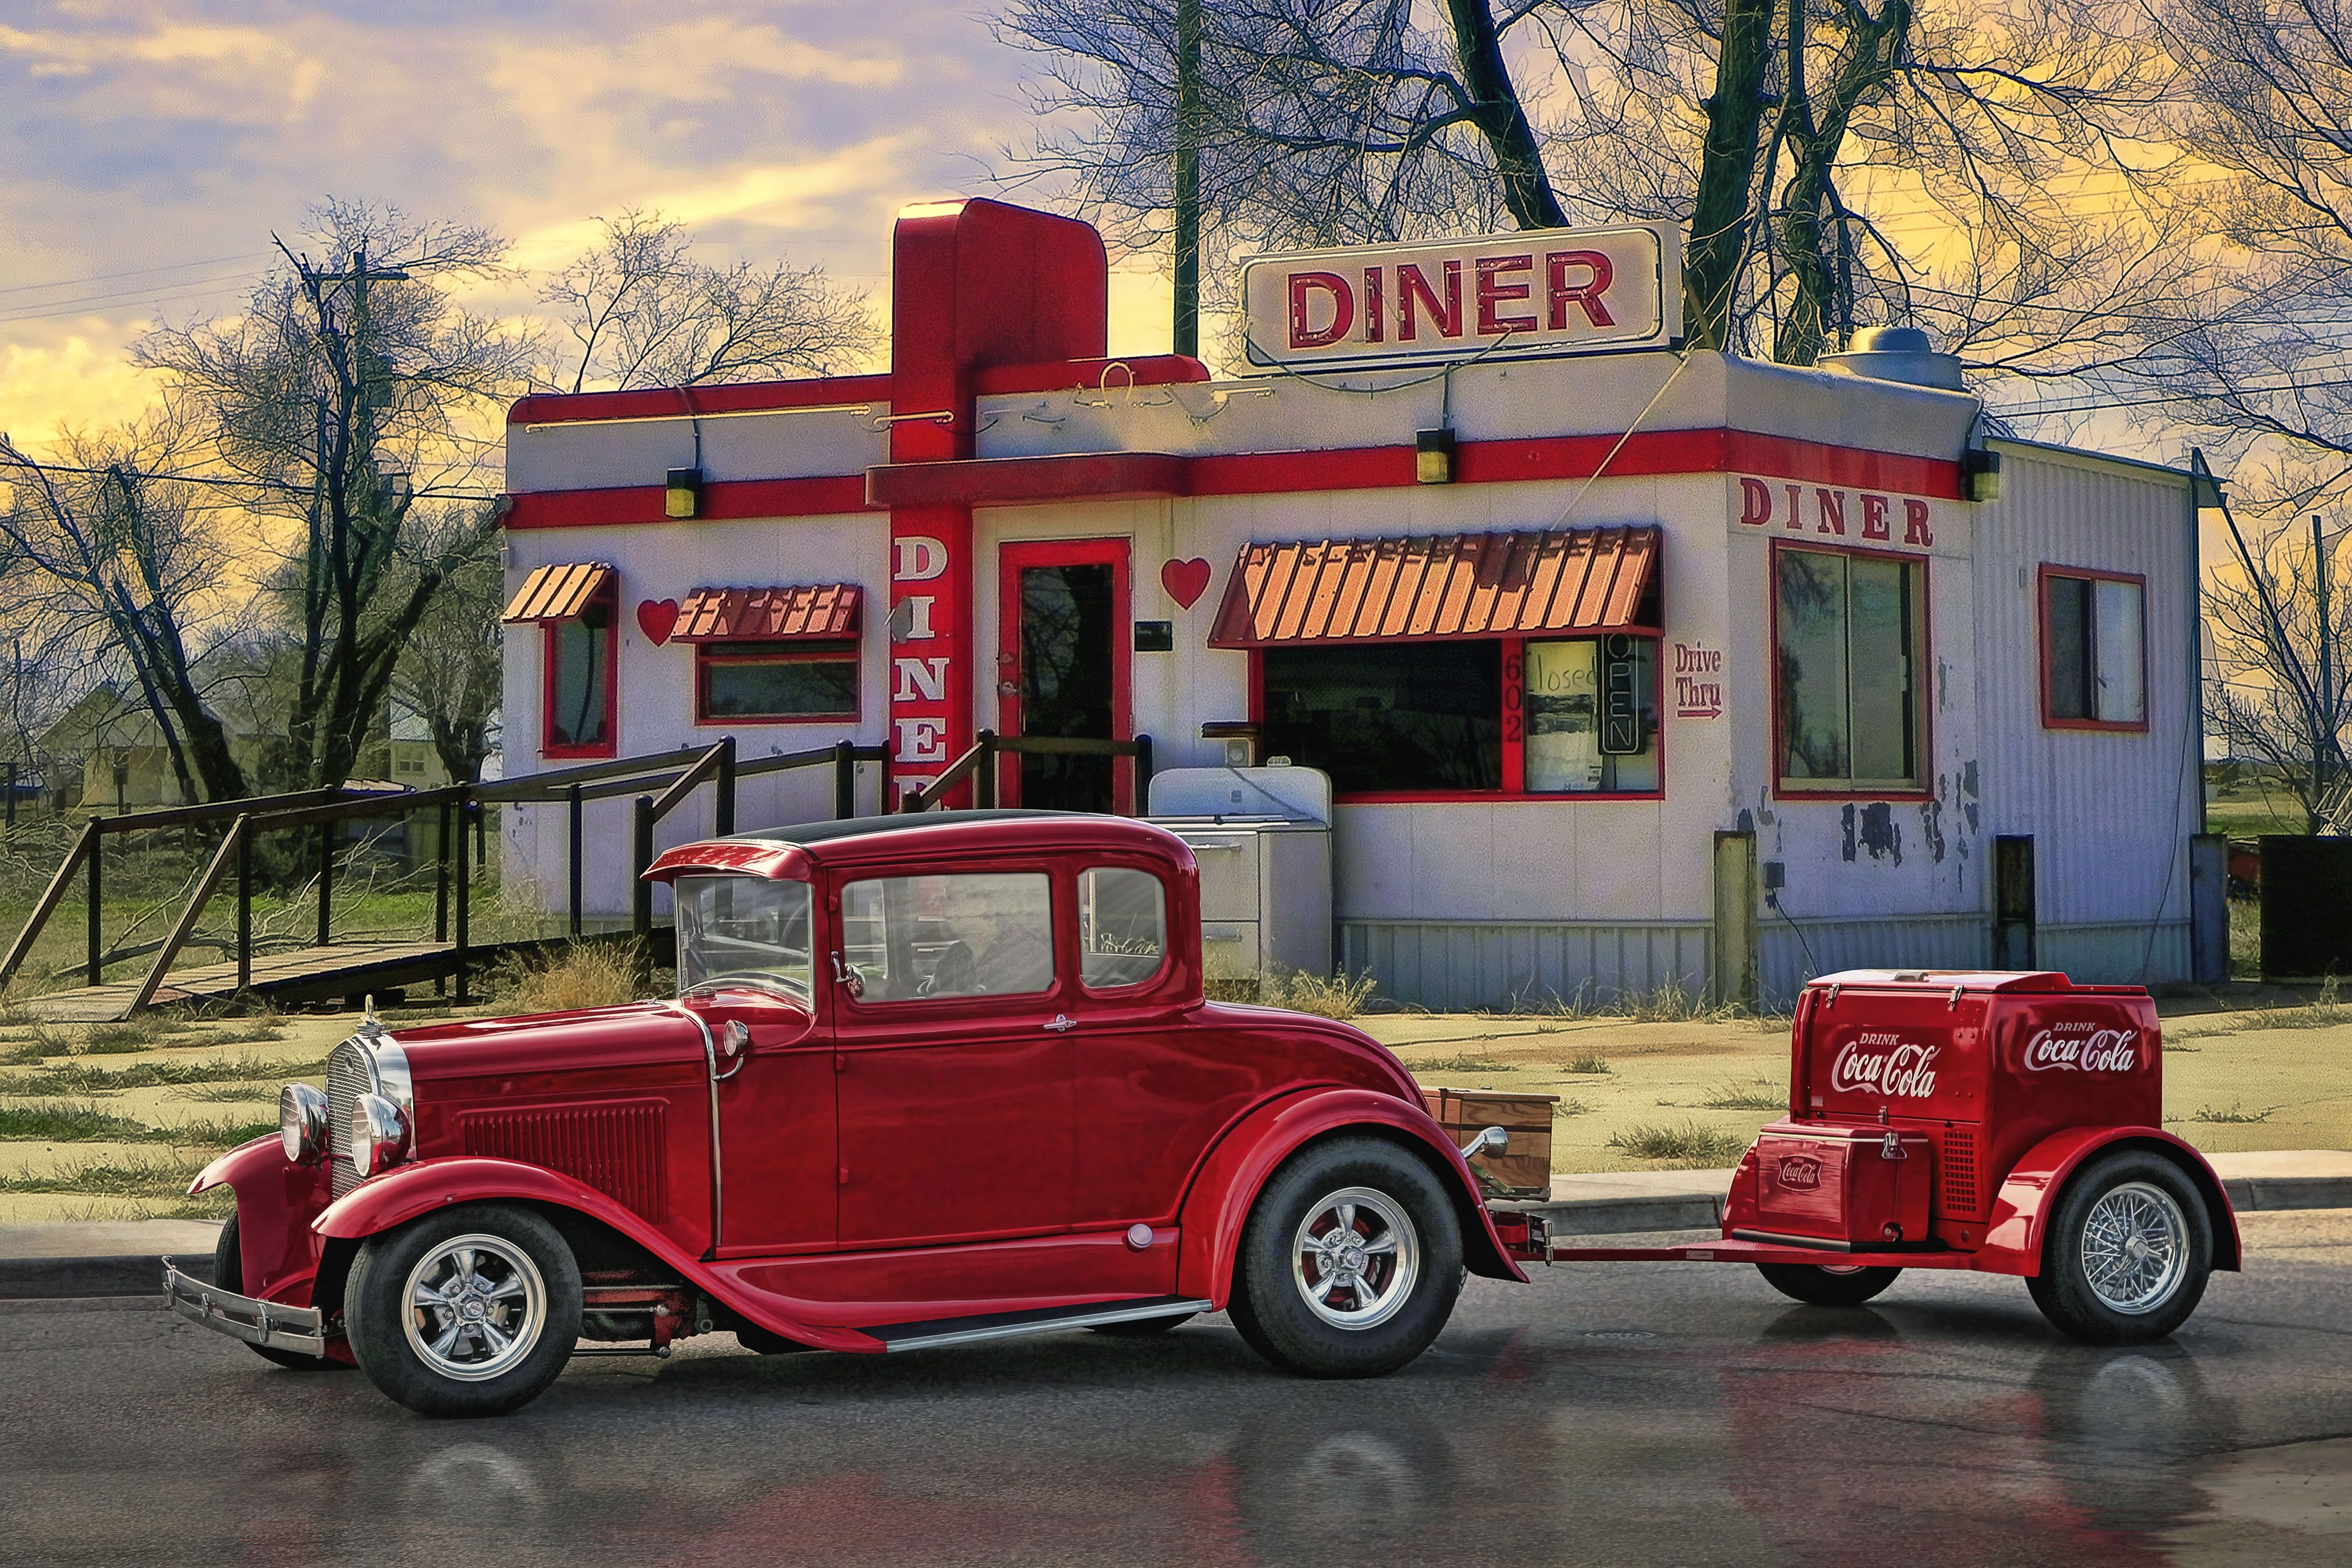 Diners and dives hot rod art by rat rod studios www for Diner artwork